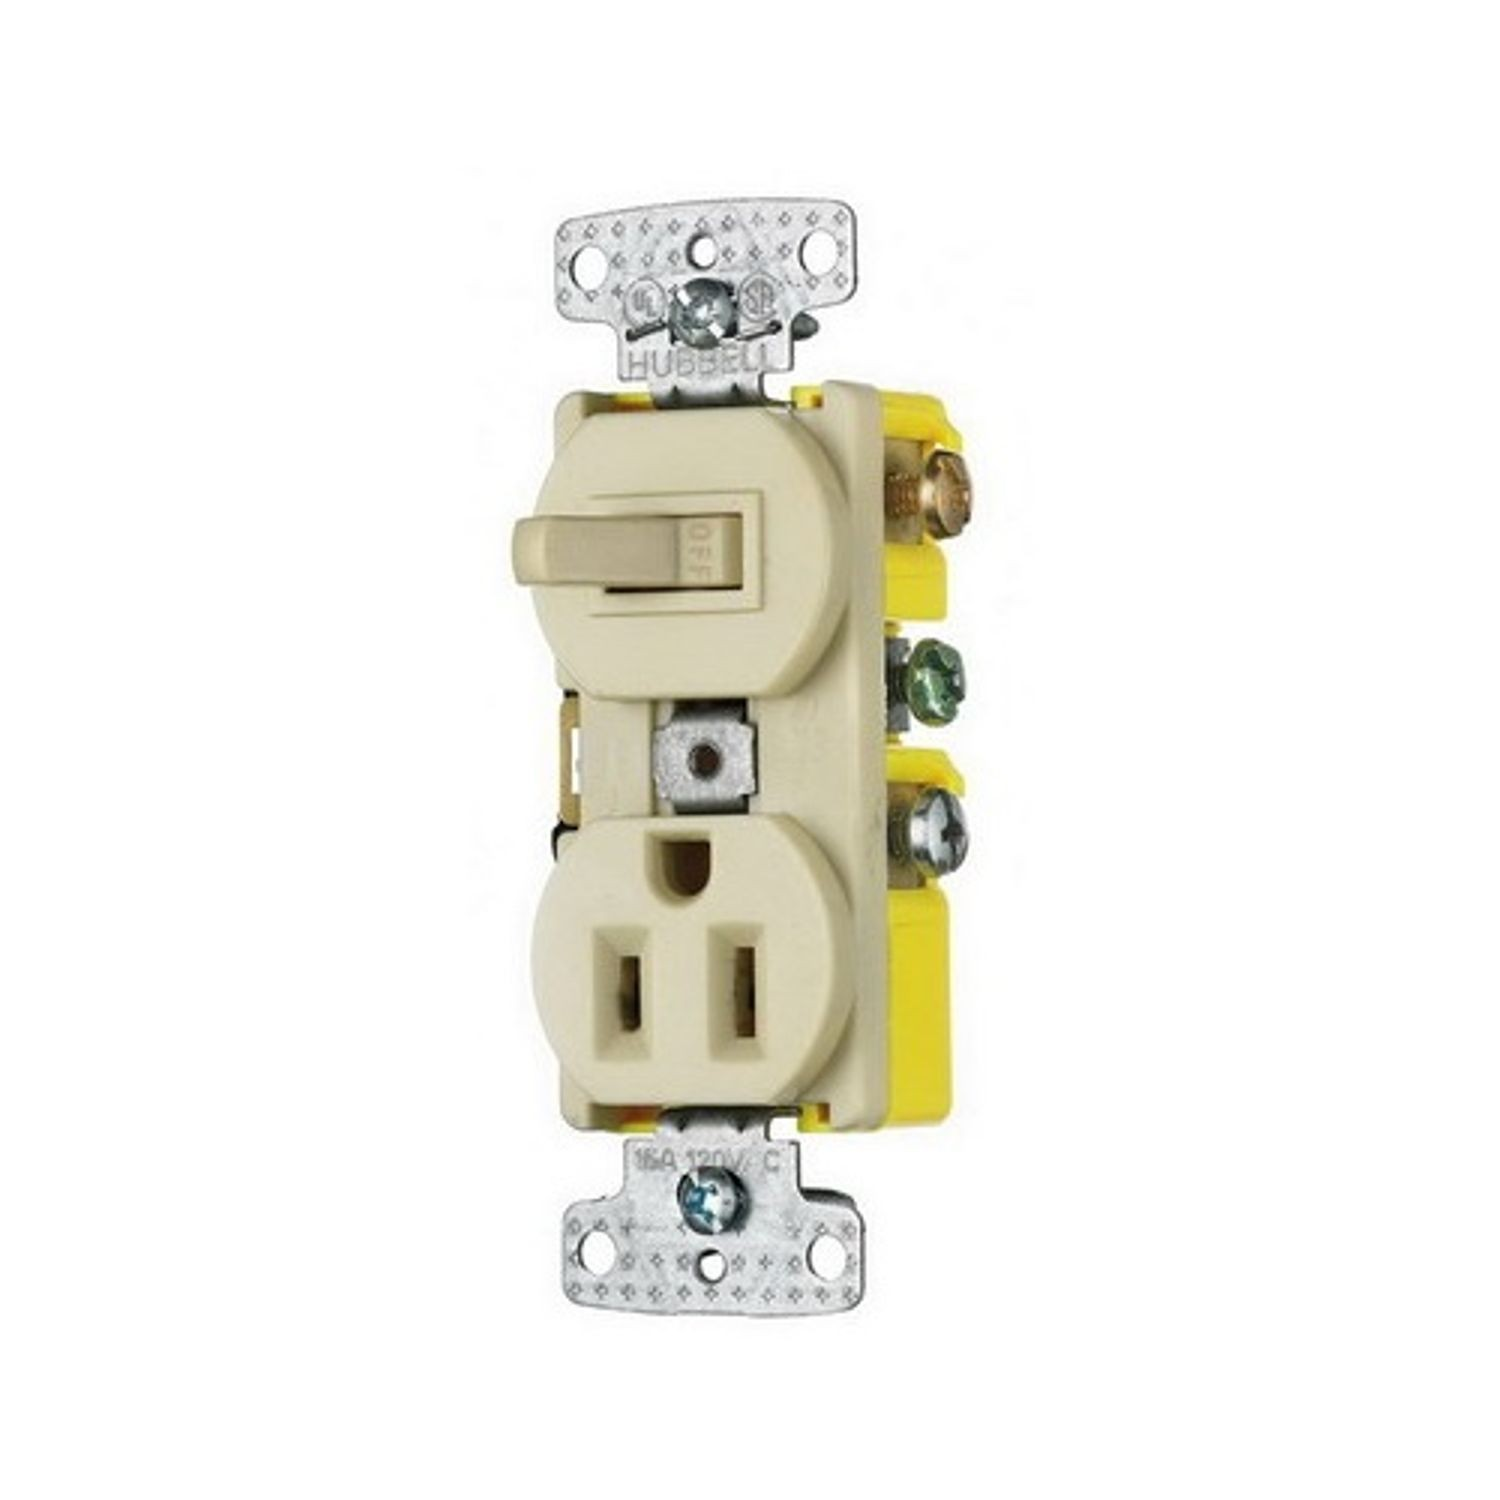 Wiring Device Kellems Tradeselect Traditional Combination Switch Receptacle And 15 A At 120 125 Vac 1 Poles 3